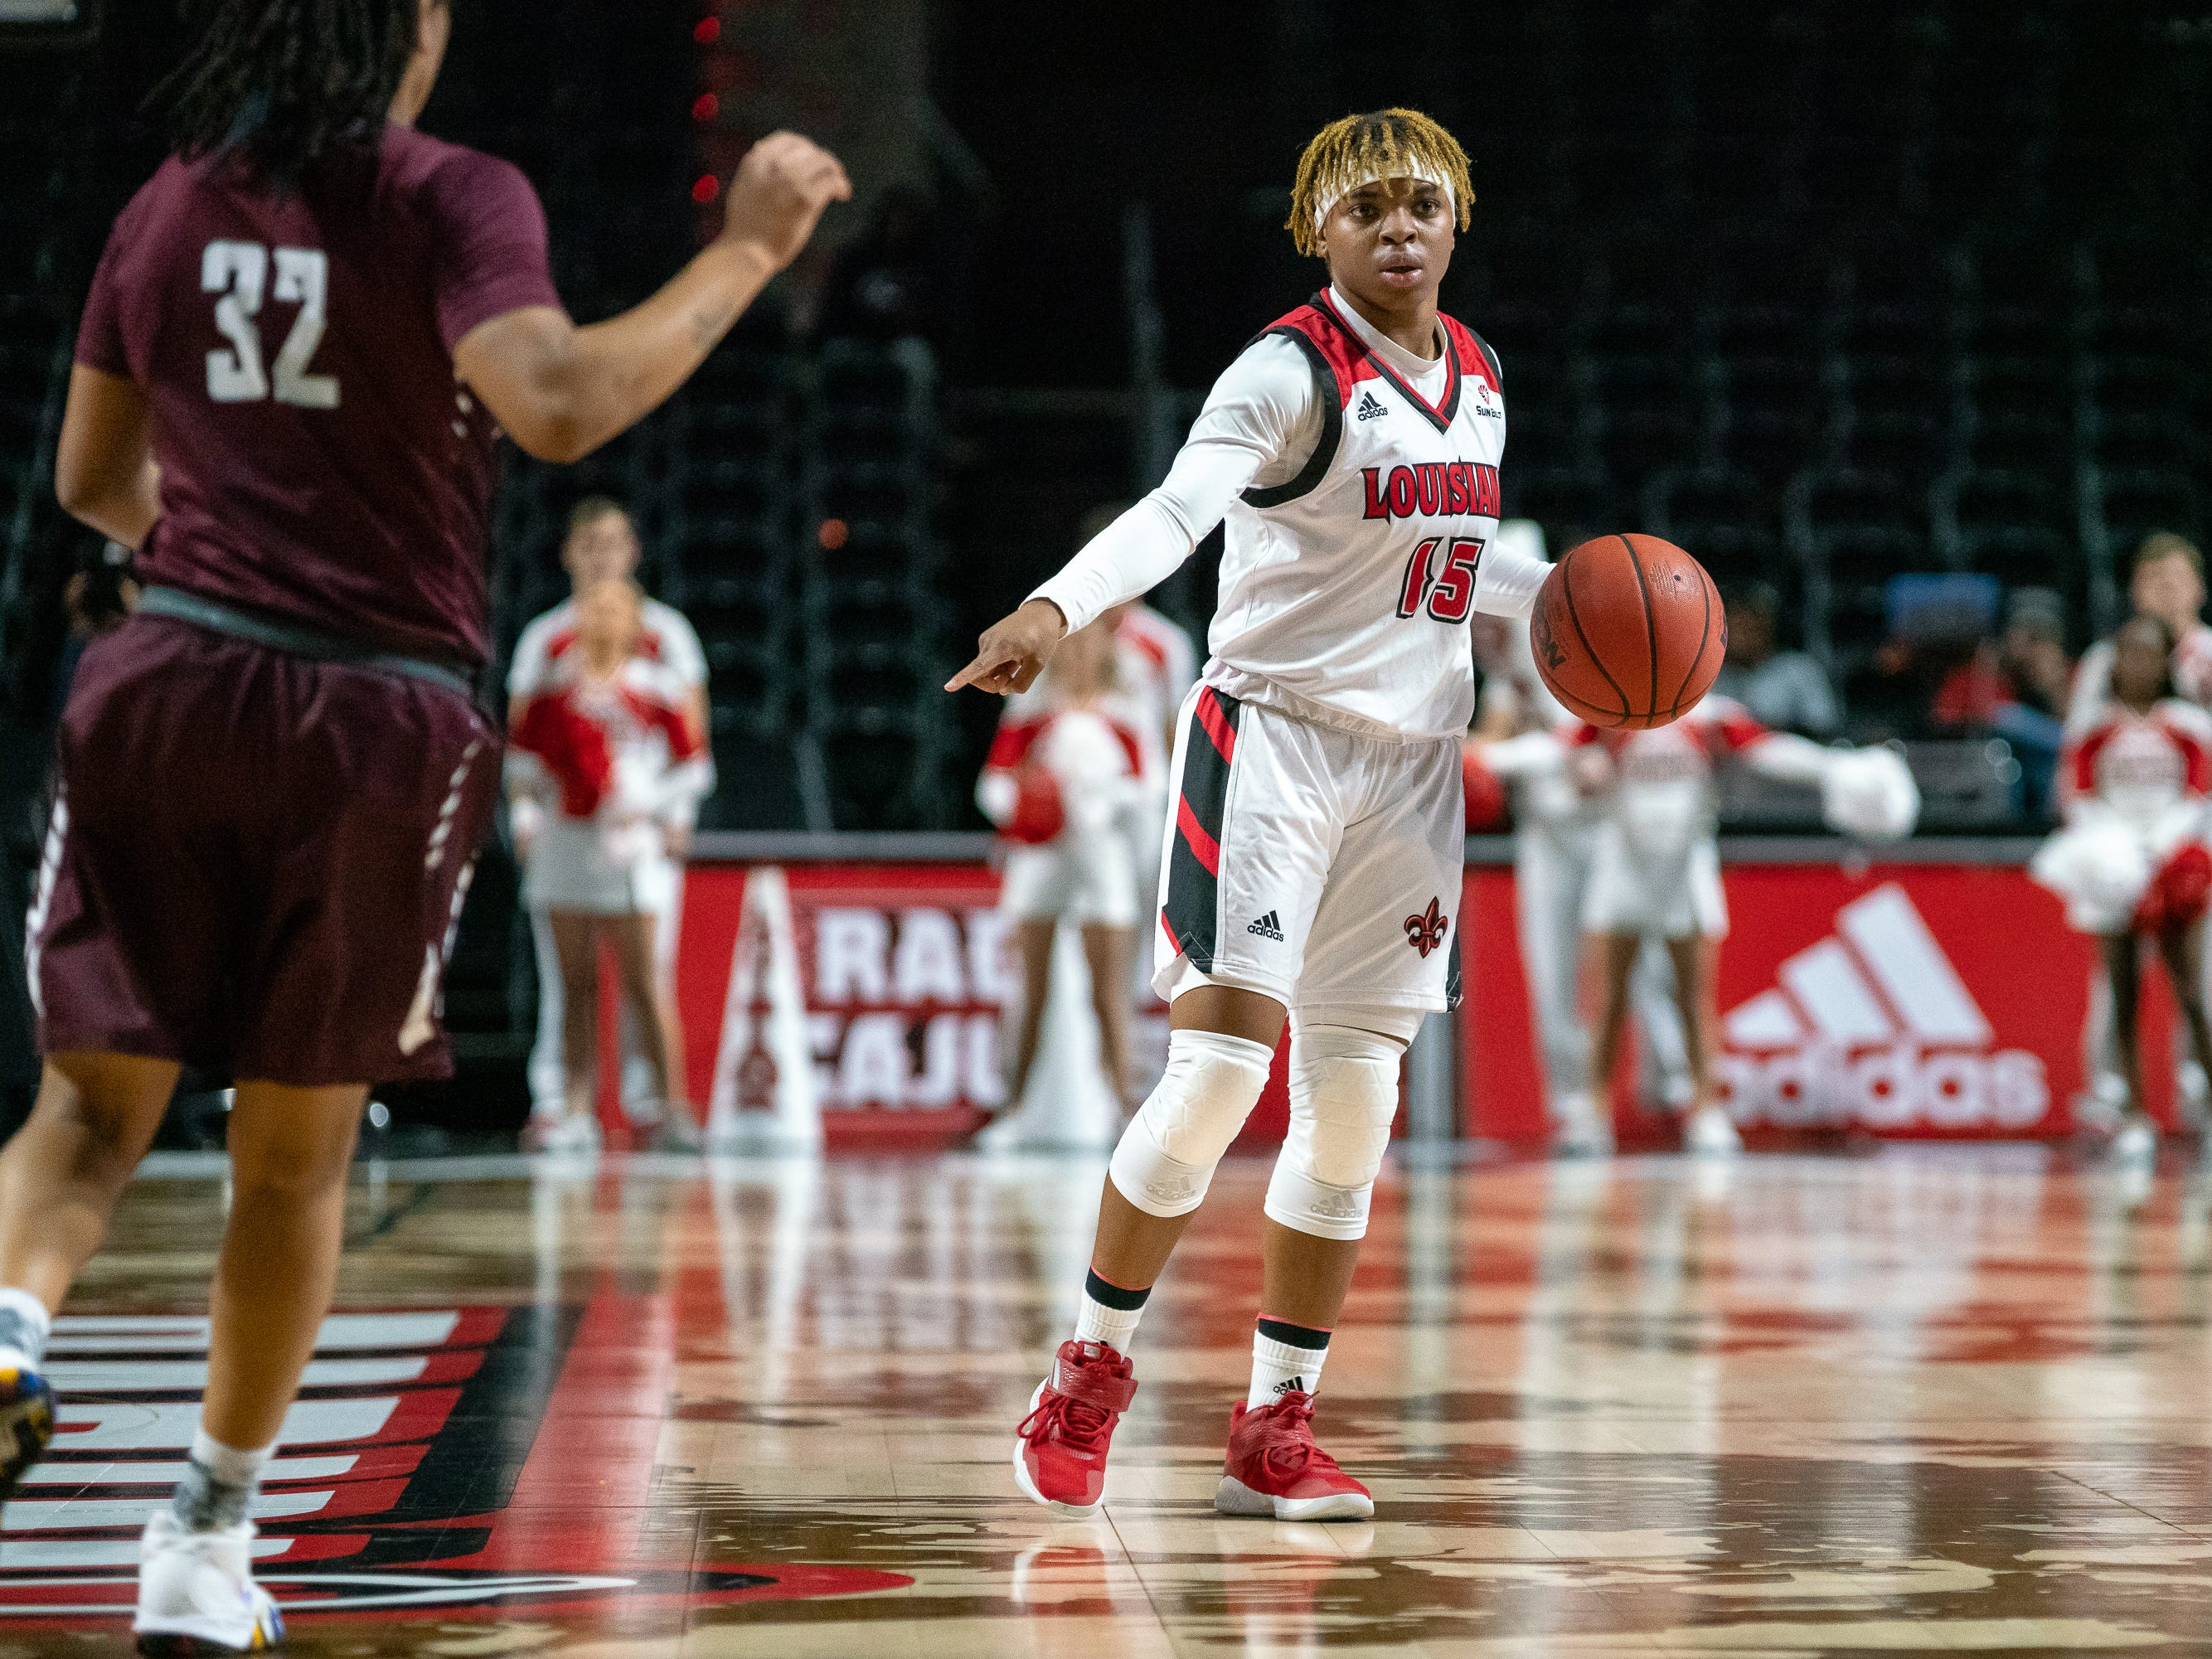 UL's Diamond Morrison directs her teammates on the court as the Ragin' Cajuns take on the Little Rock Trojans at the Cajundome on Thursday, March 7, 2019.